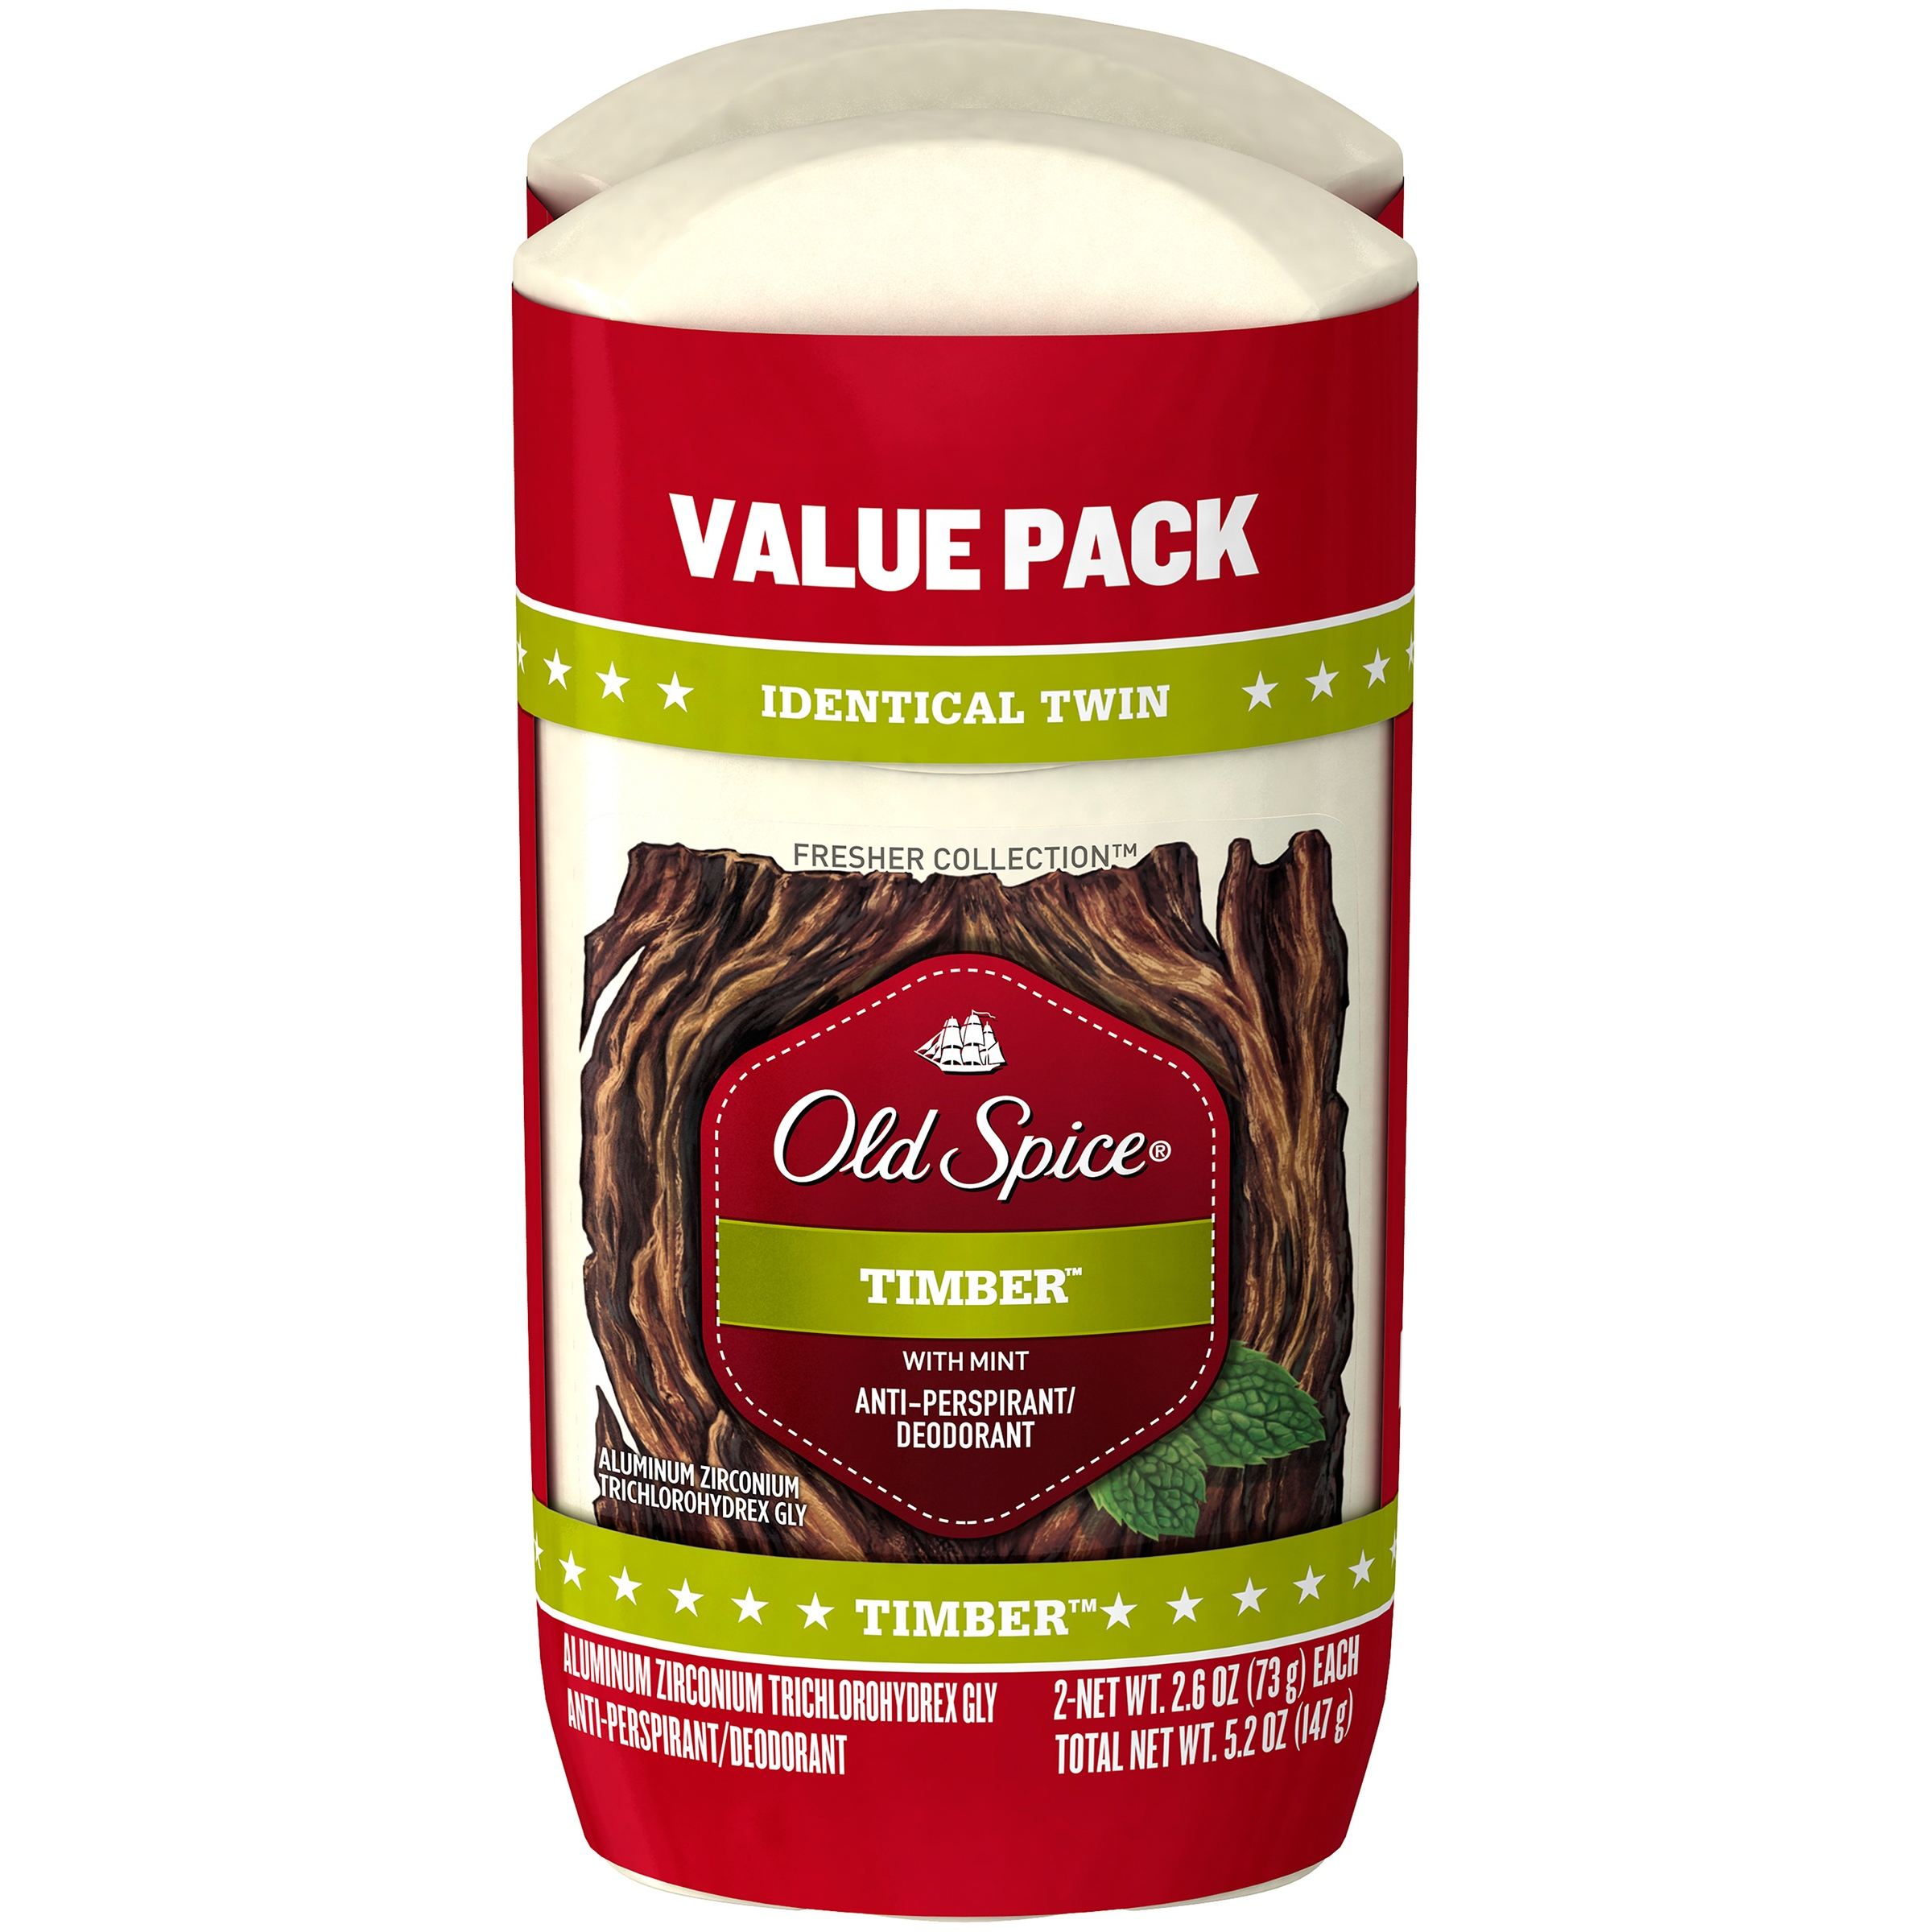 Old Spice Fresh Collection Timber Antiperspirant and Deodorant 2.6 oz Twin Pack